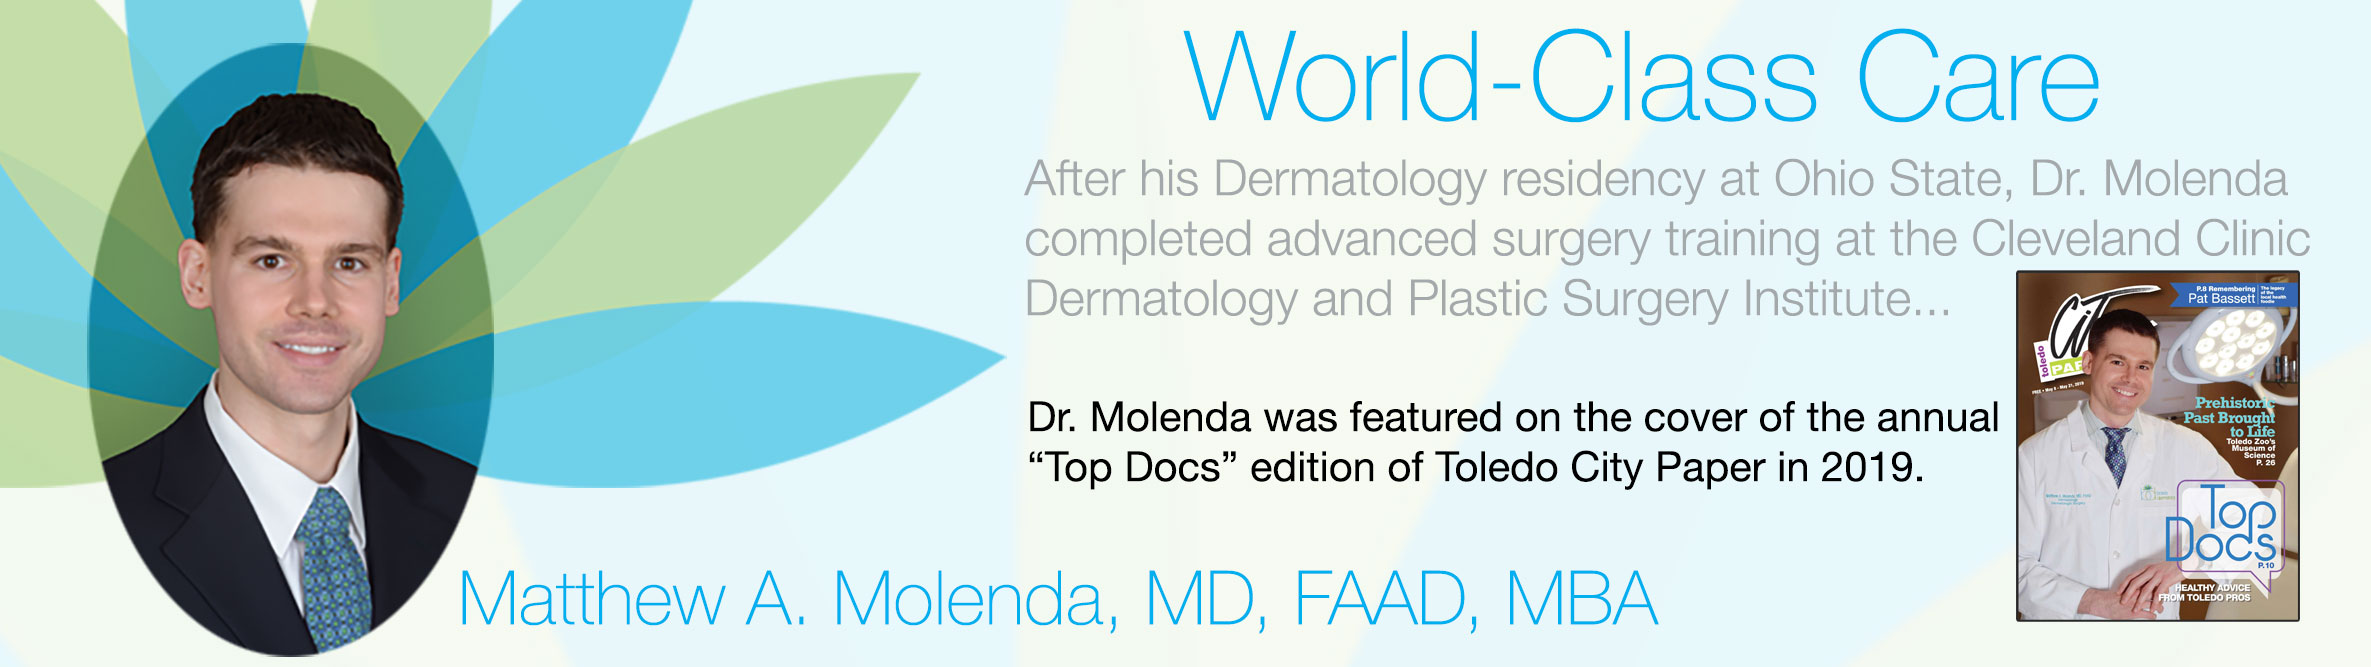 Dr. Molenda is a board-certified dermatologist and fellowship trained skin cancer surgeon.